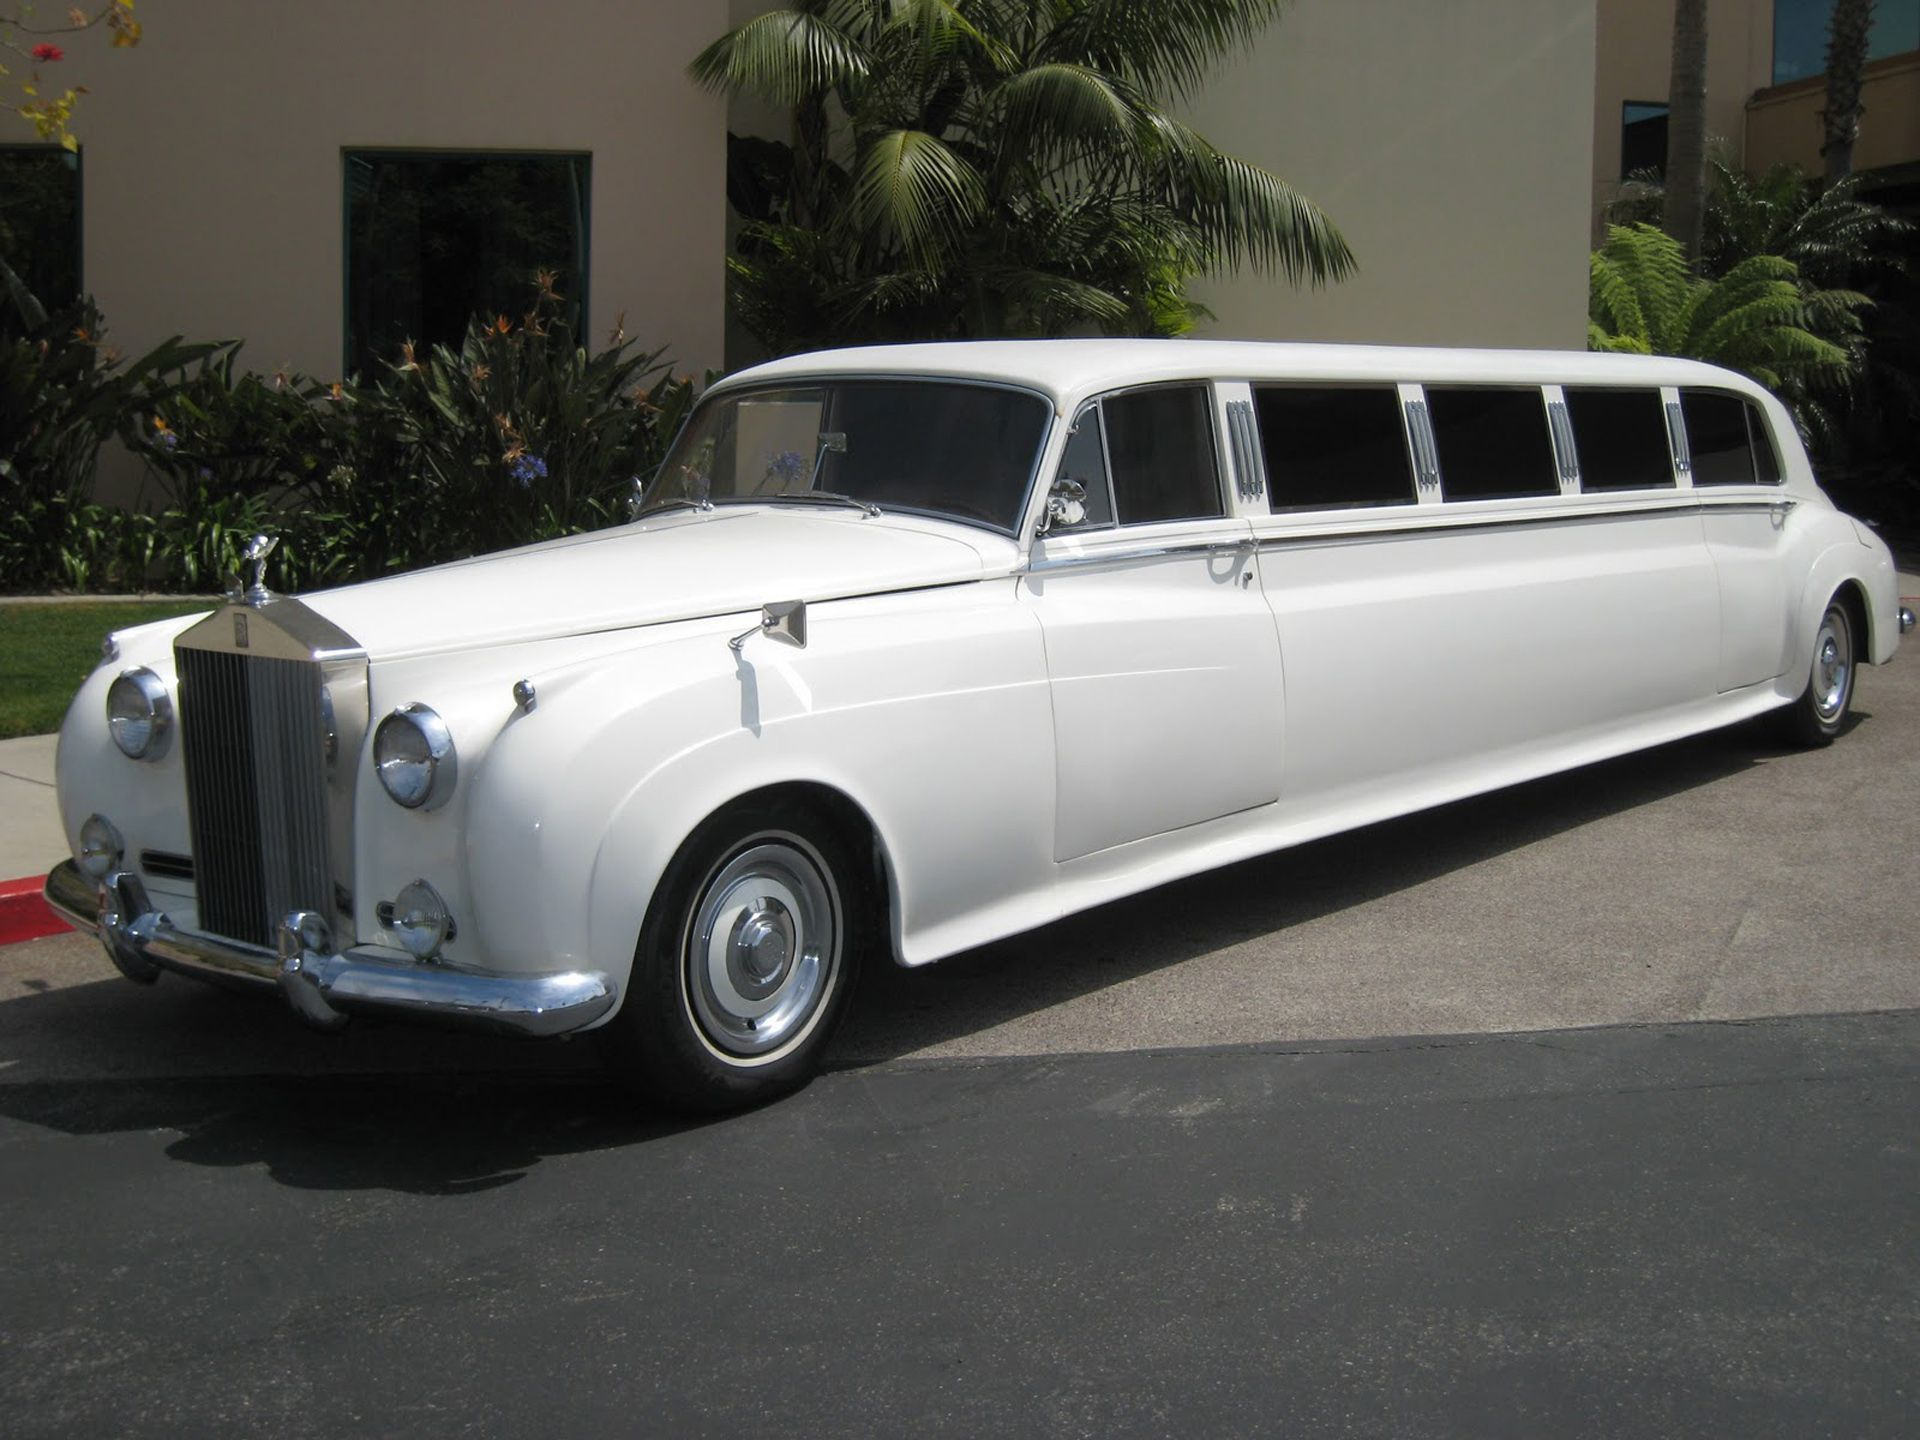 RollsRoyce Classic Limos (With images) Rolls royce